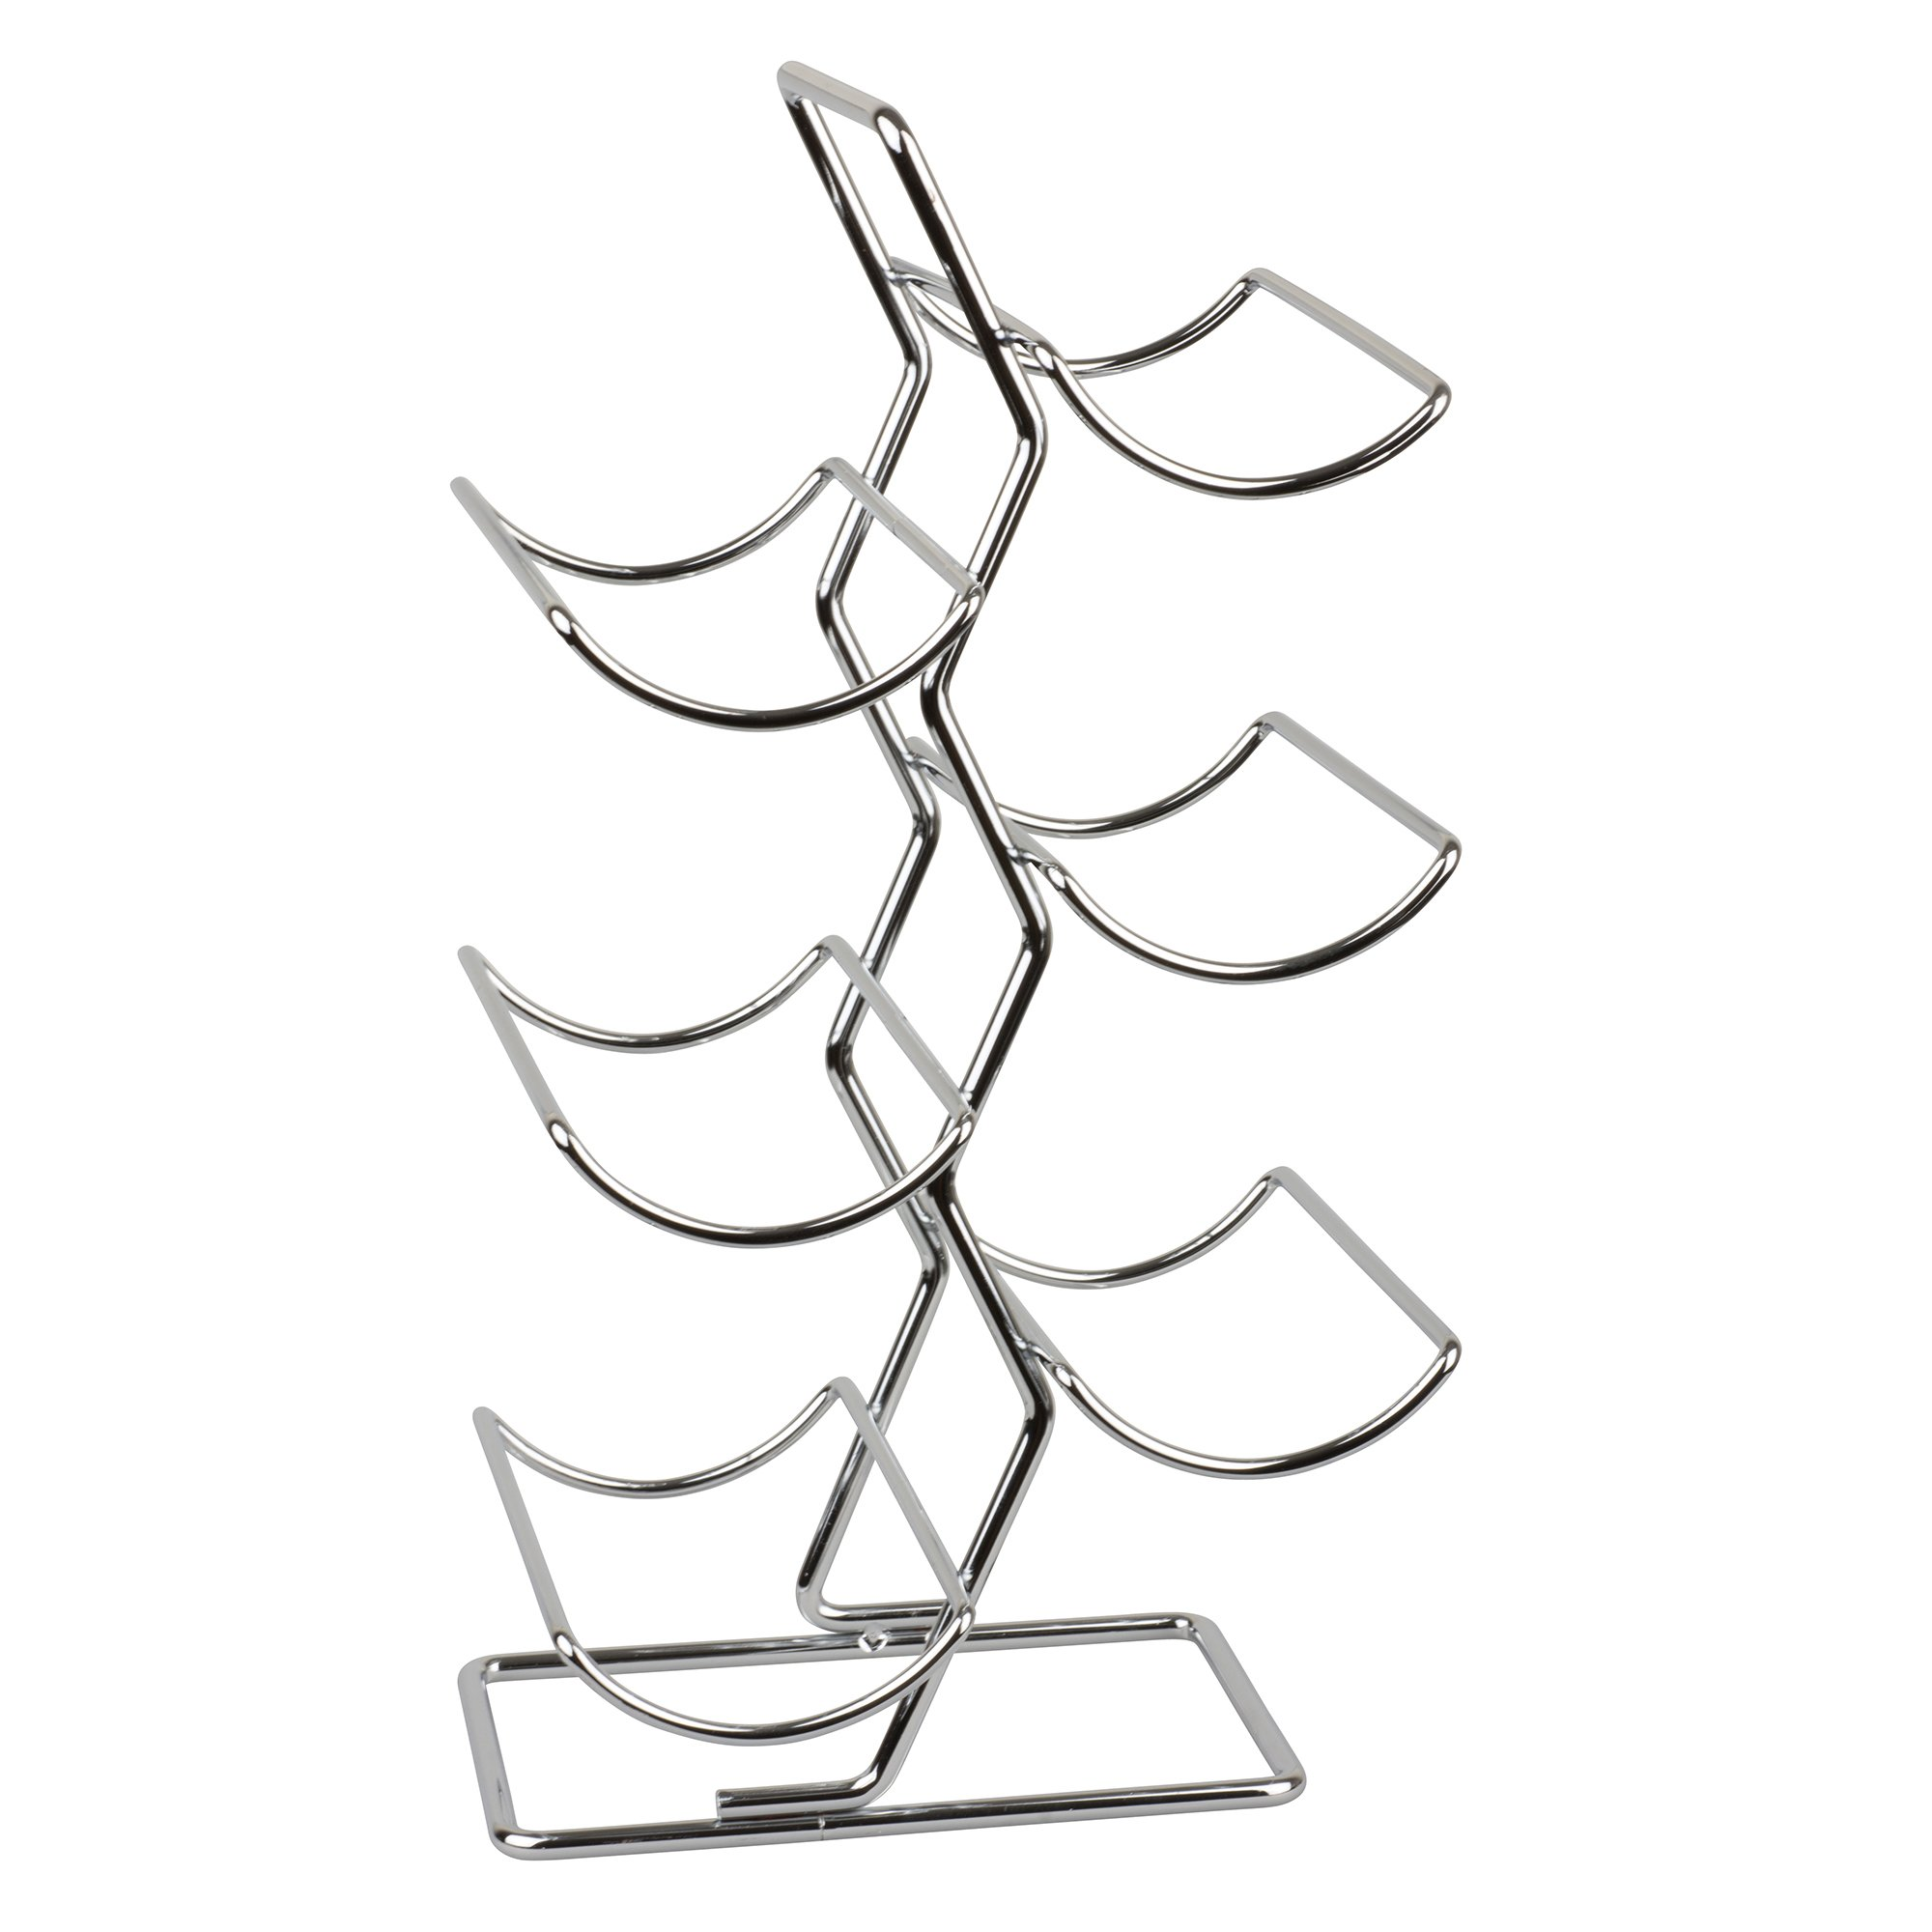 It's Useful Standing Wine Rack Holder – Hold, Store and Display Up to 6 Wine Bottles – Sleek Metal Chrome Stand by It's Useful